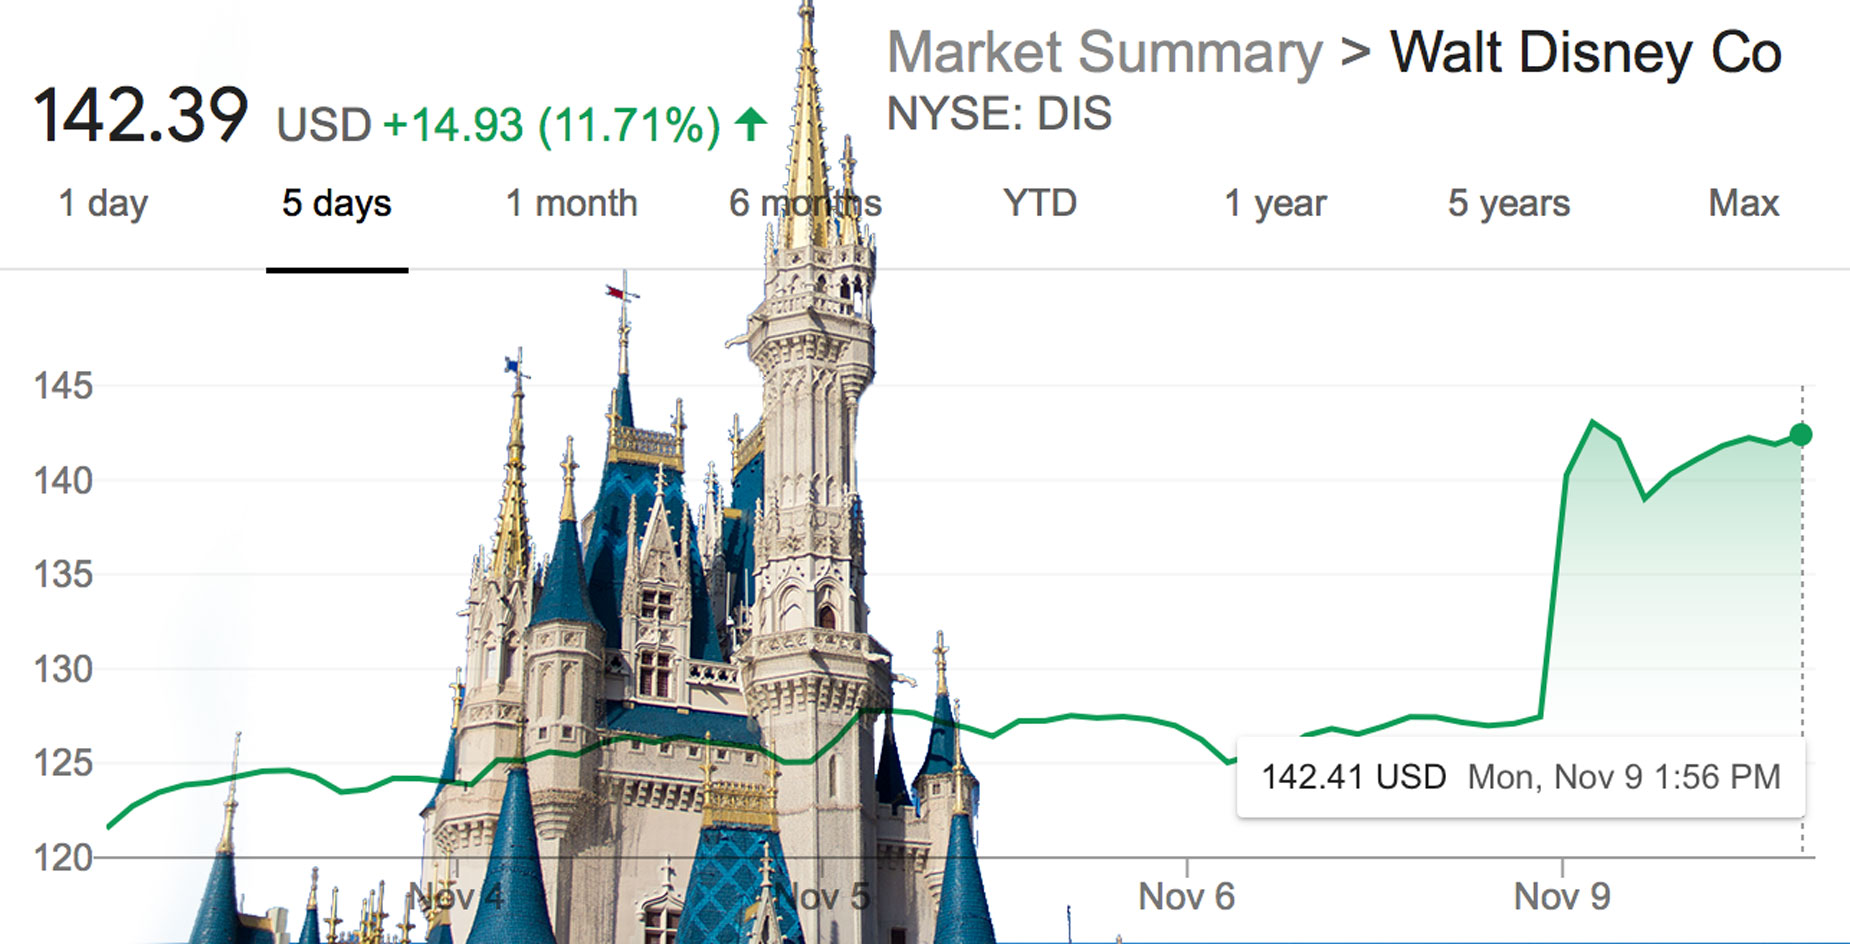 Cinderella Castle and DIS stock